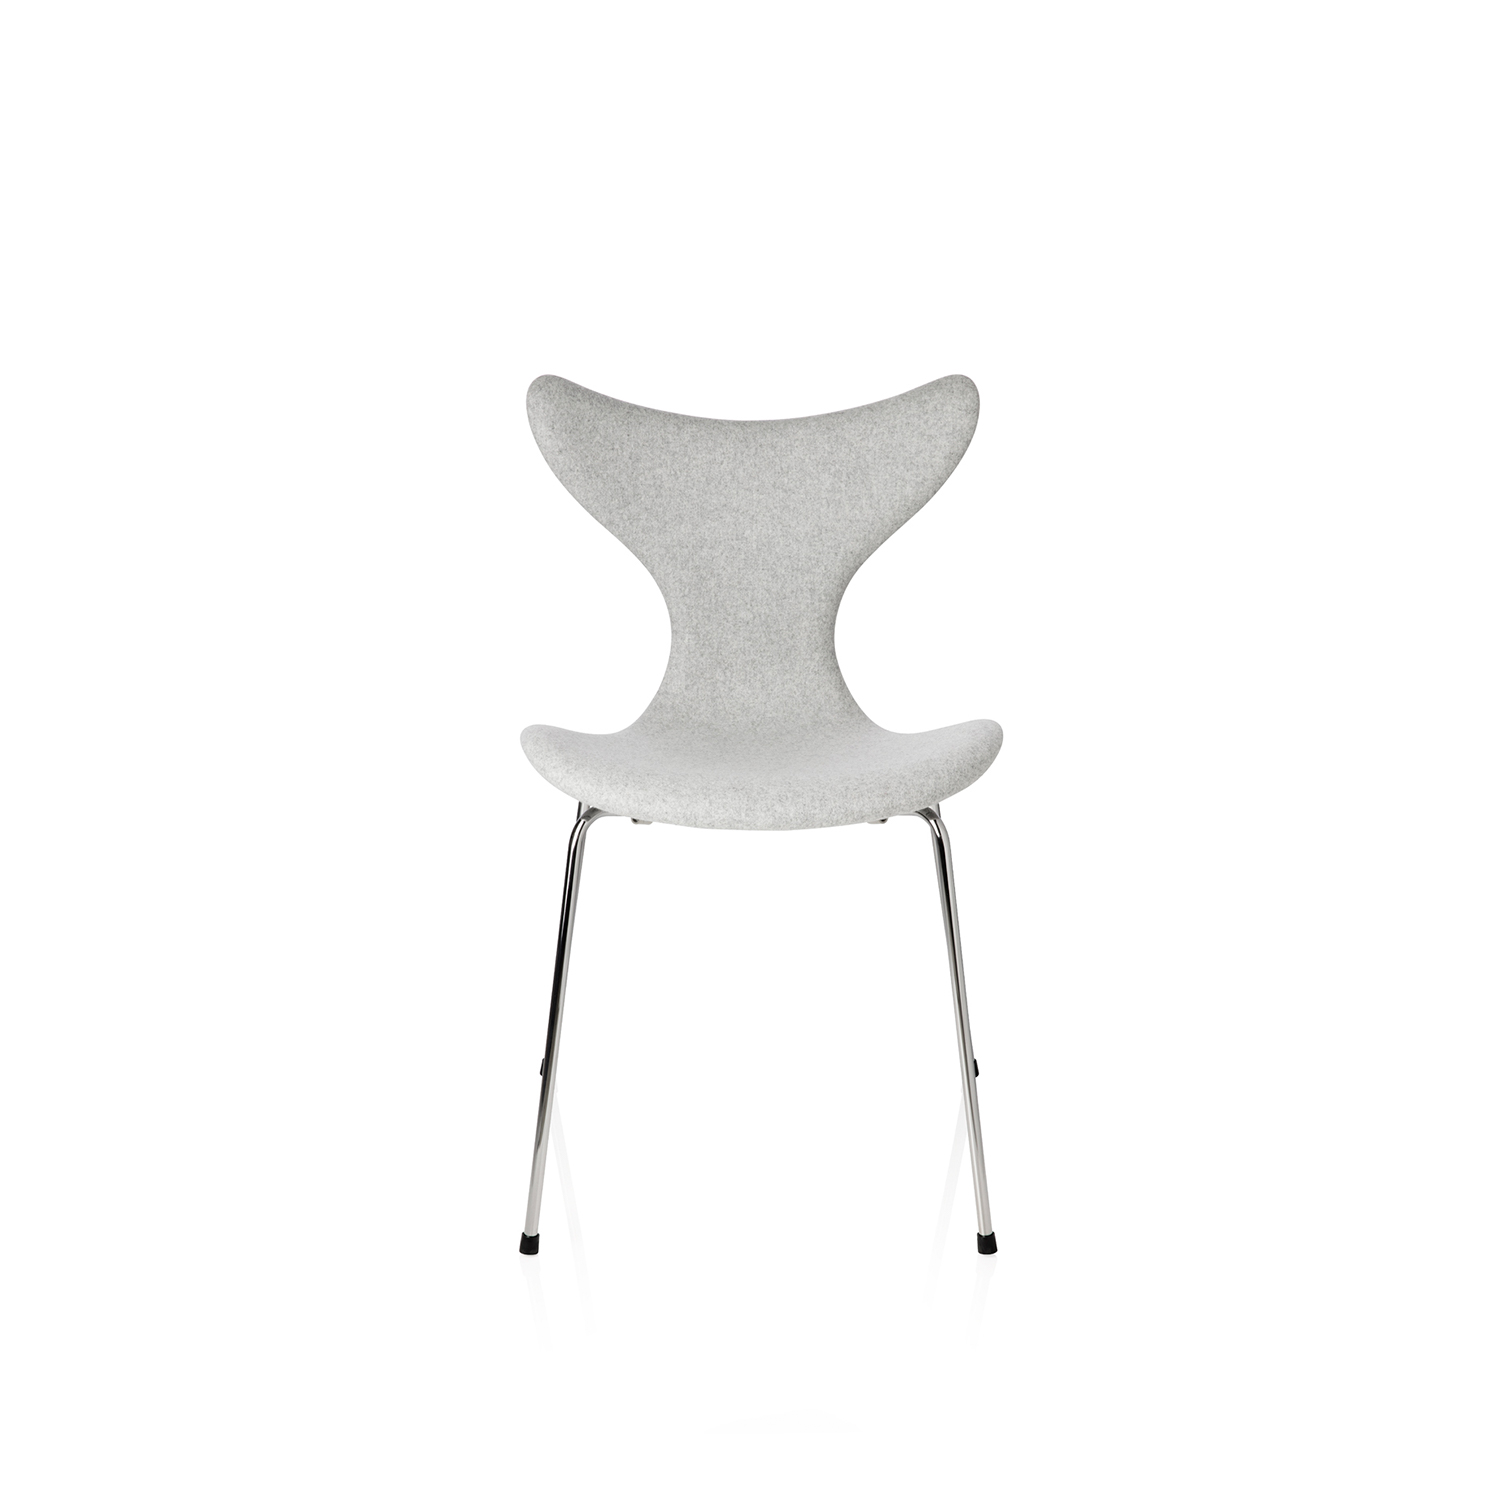 Lily Chair - This series 8 chair was originally designed for the Danish National Bank. It is often referred to as the Lily.